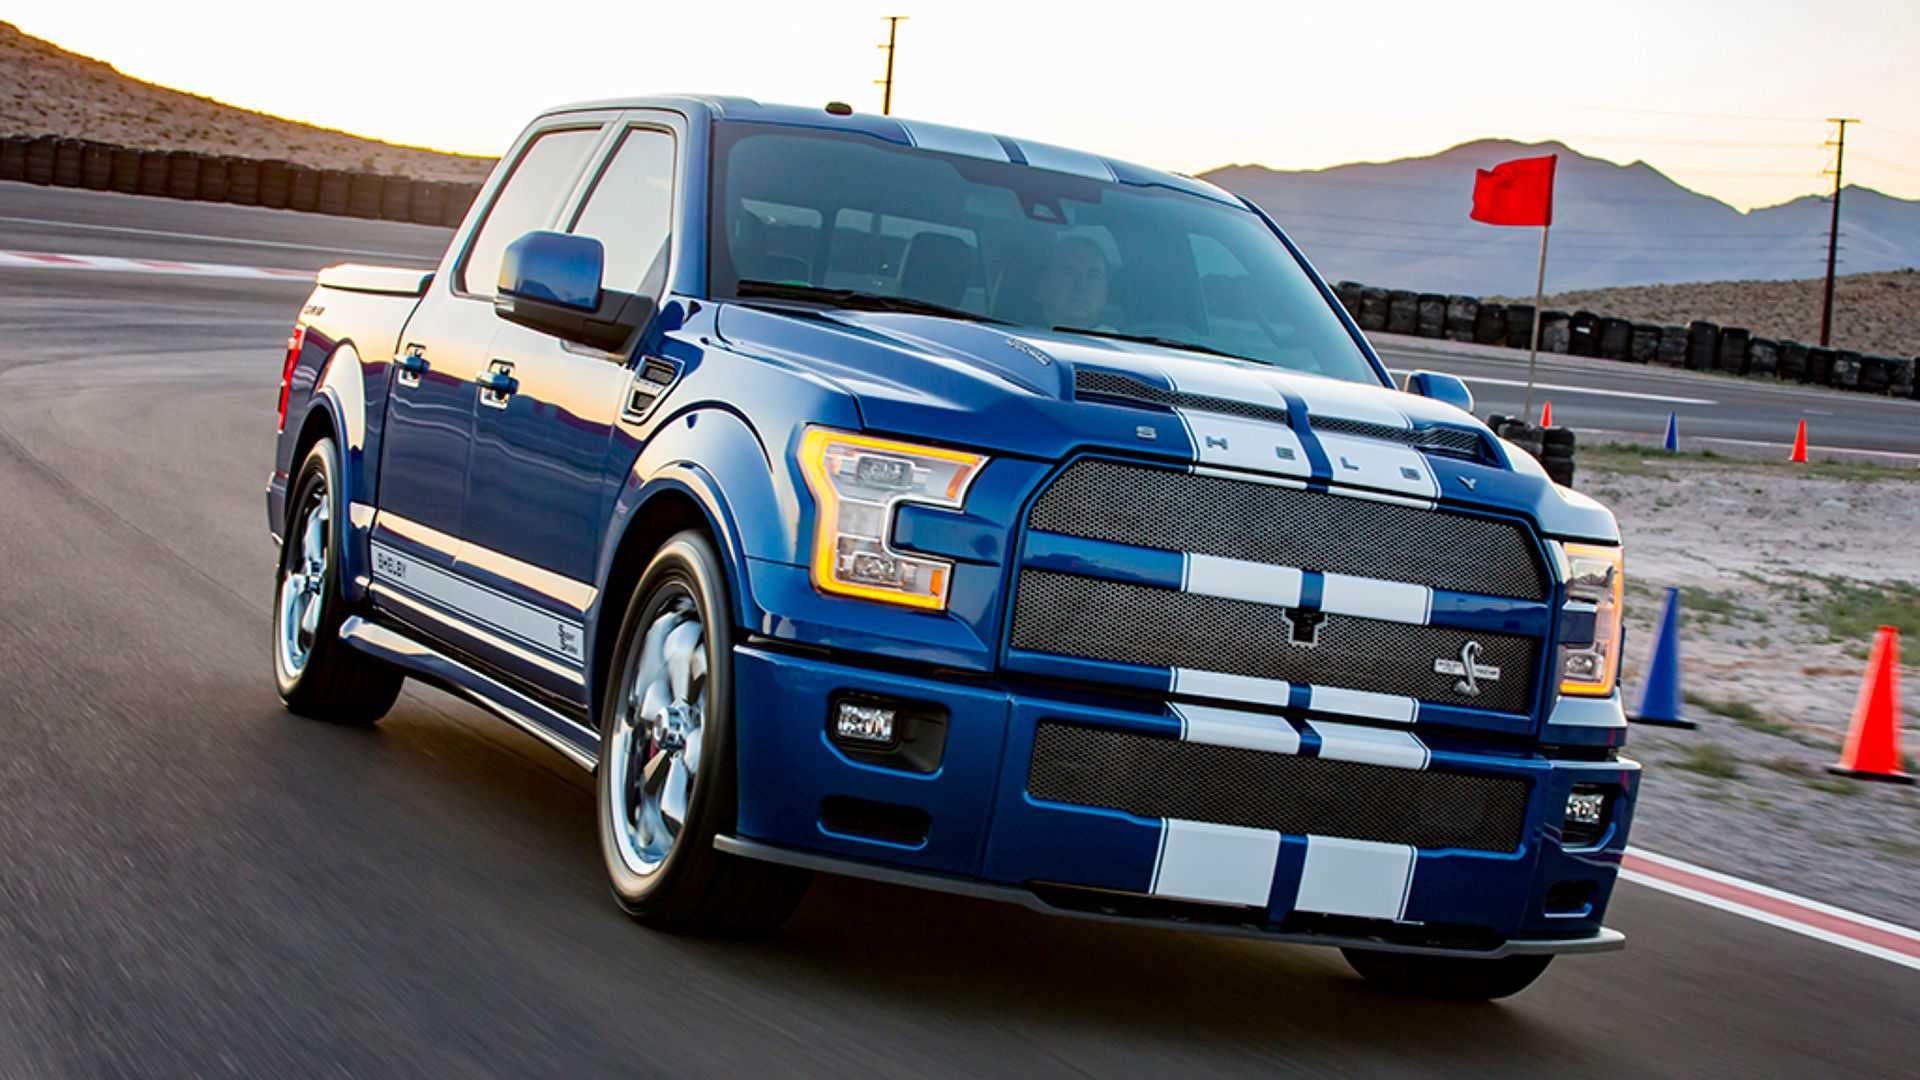 Shelby F 150 Super Snake With 750 Hp Can Take A Bite Out Of